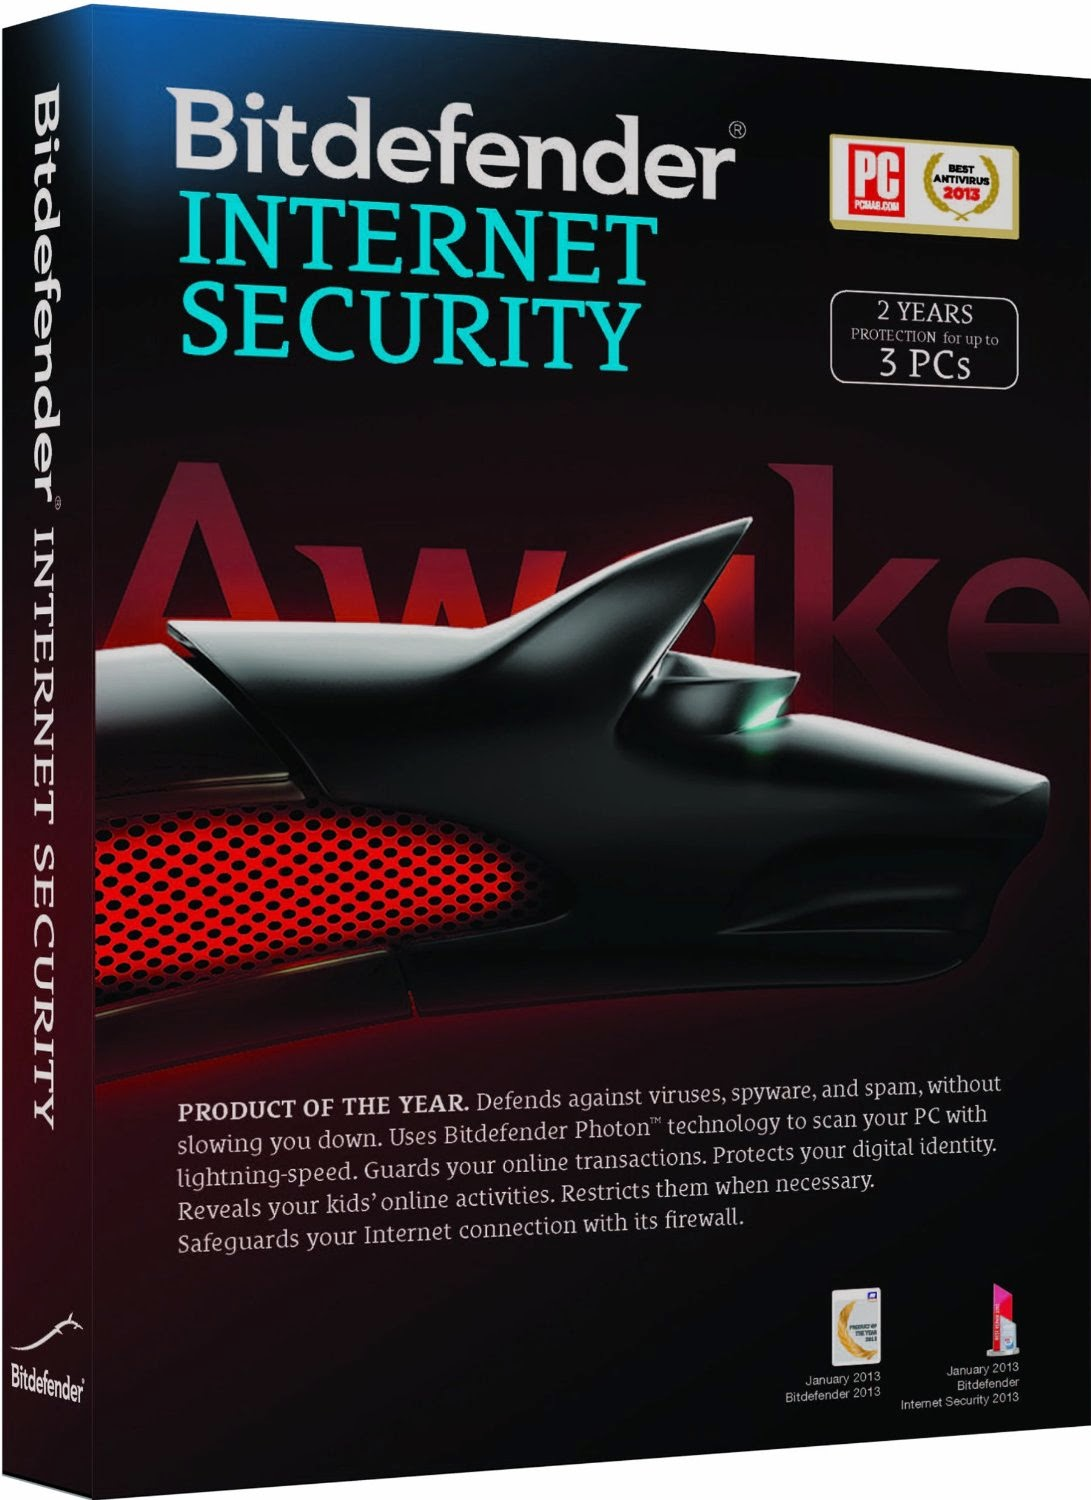 BitDefender+Internet+Security BitDefender Internet Security 2015 Build 18.11.0.872 (x86/x64)